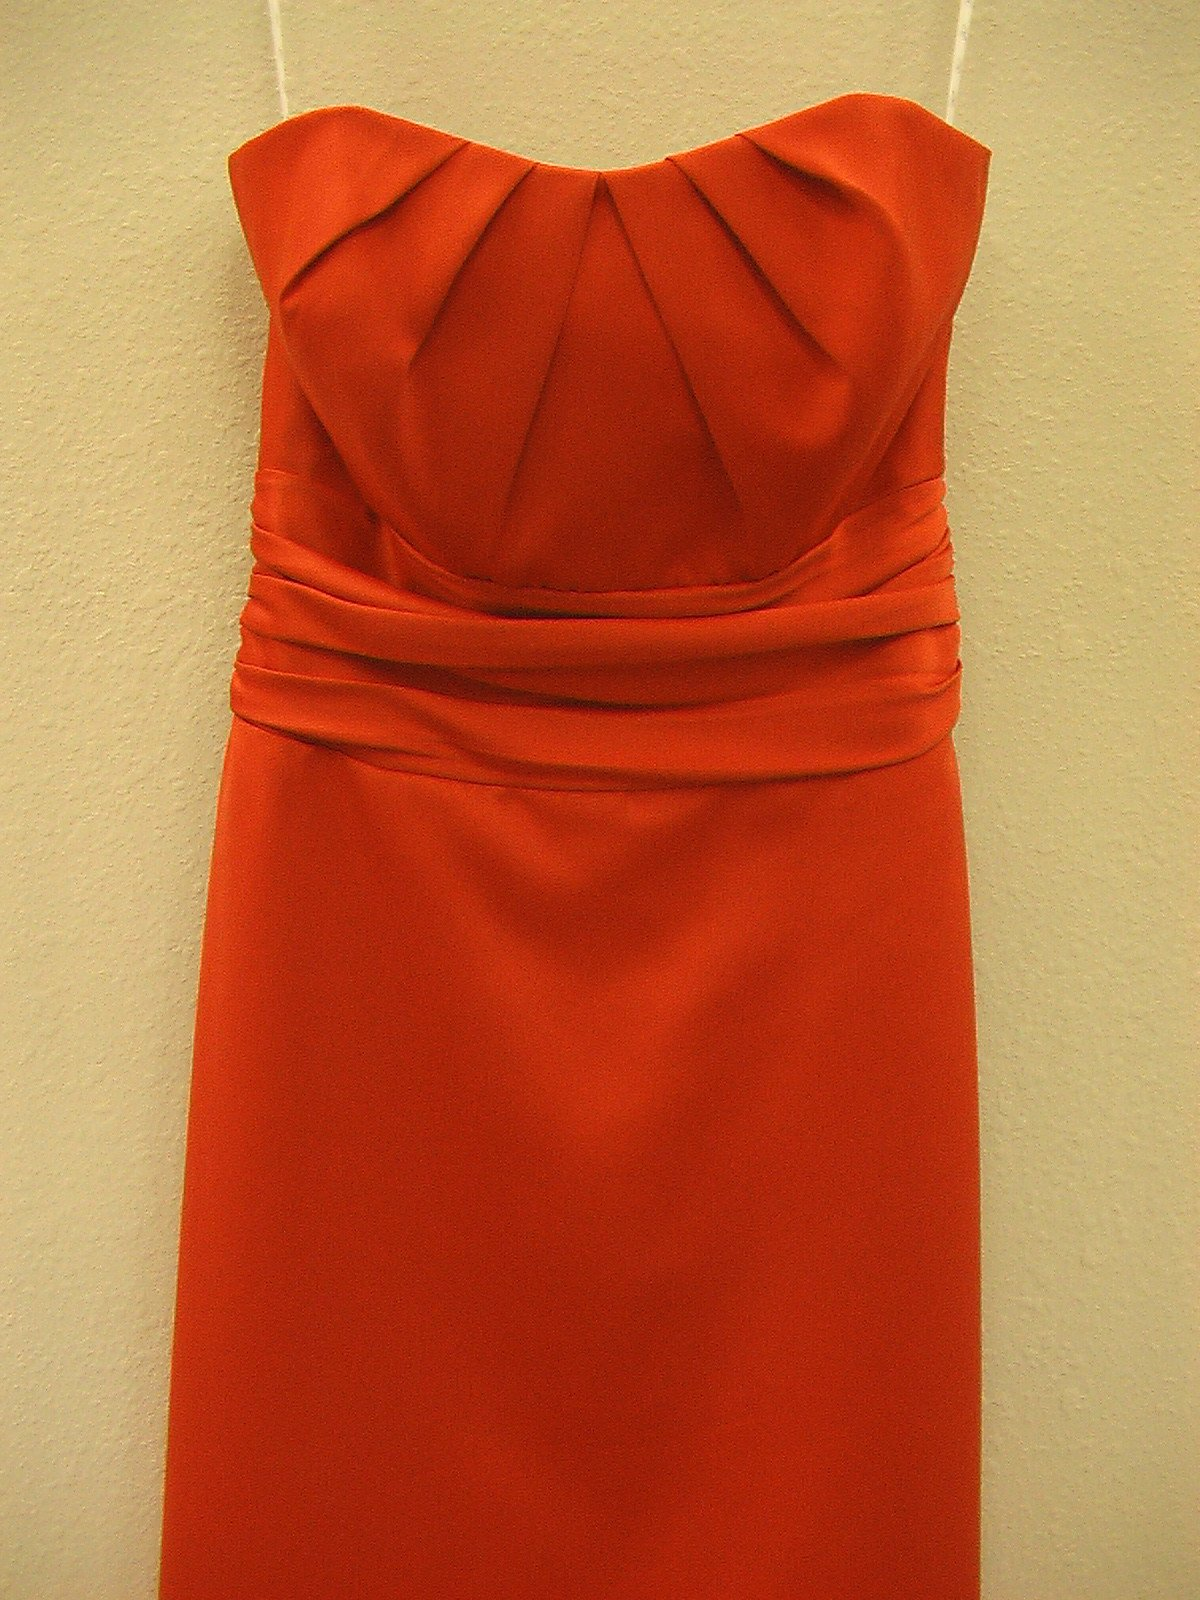 Jasmine B2 B2041 New Red 10 In Stock Bridesmaid Dress-NEW - Tom's Bridal